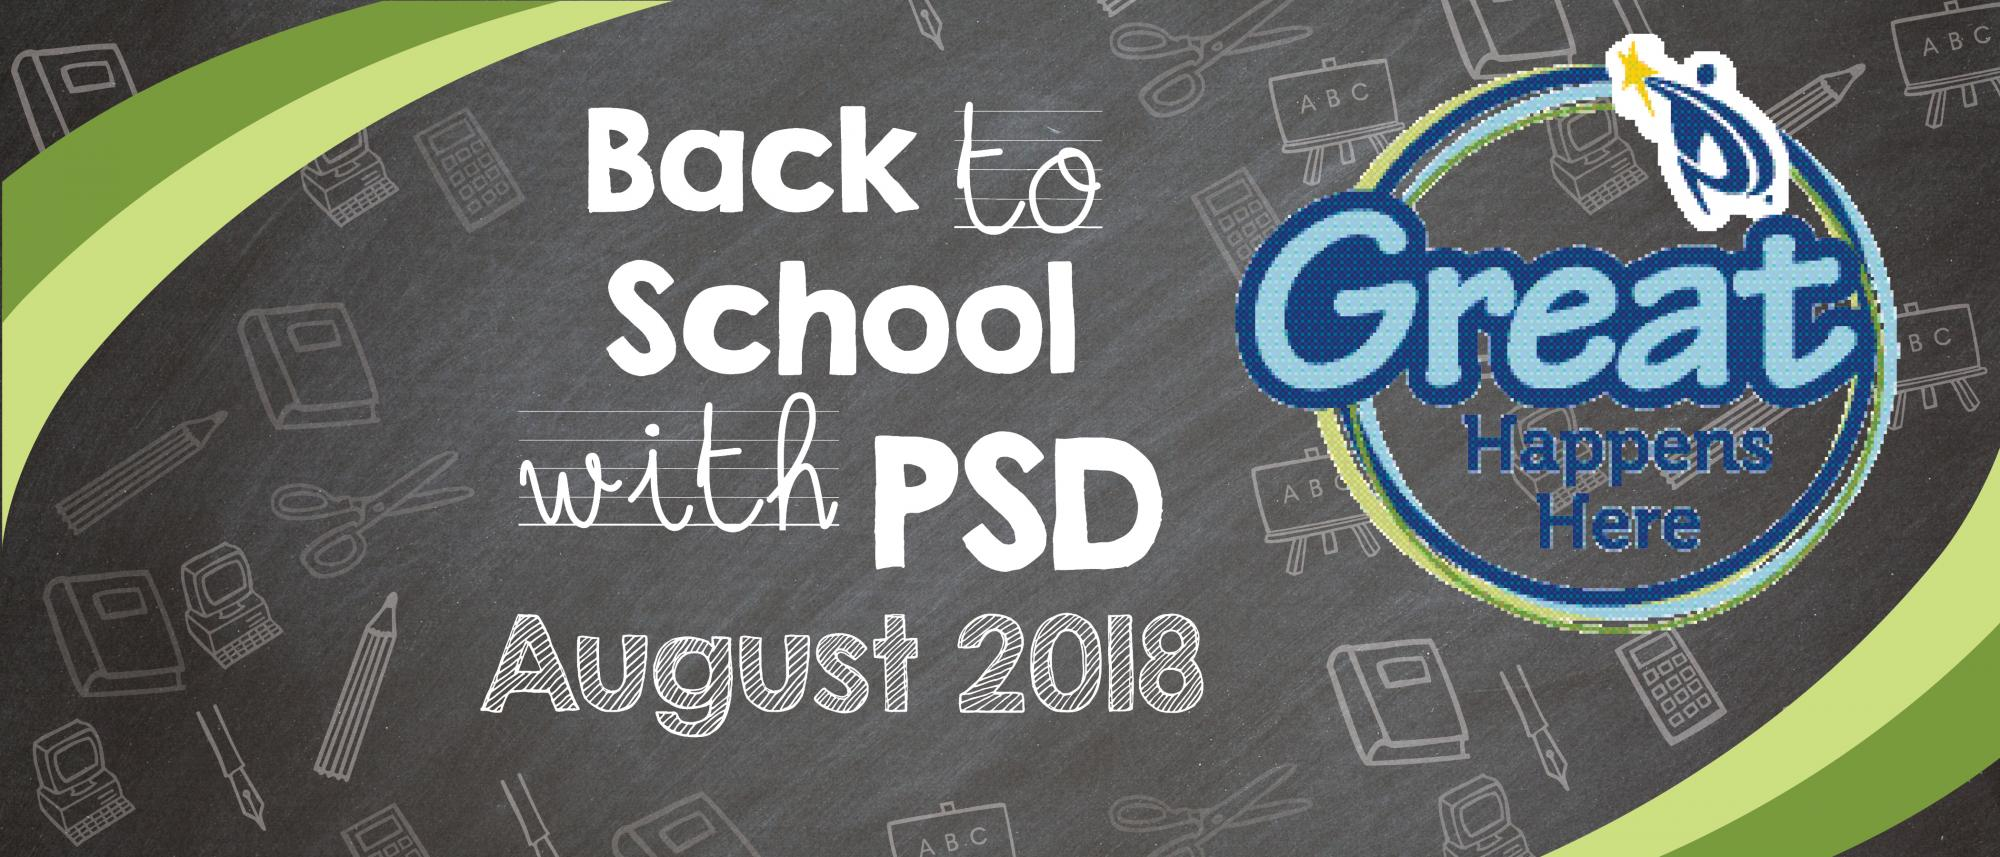 Back to School with PSD August 2018 Newsletter